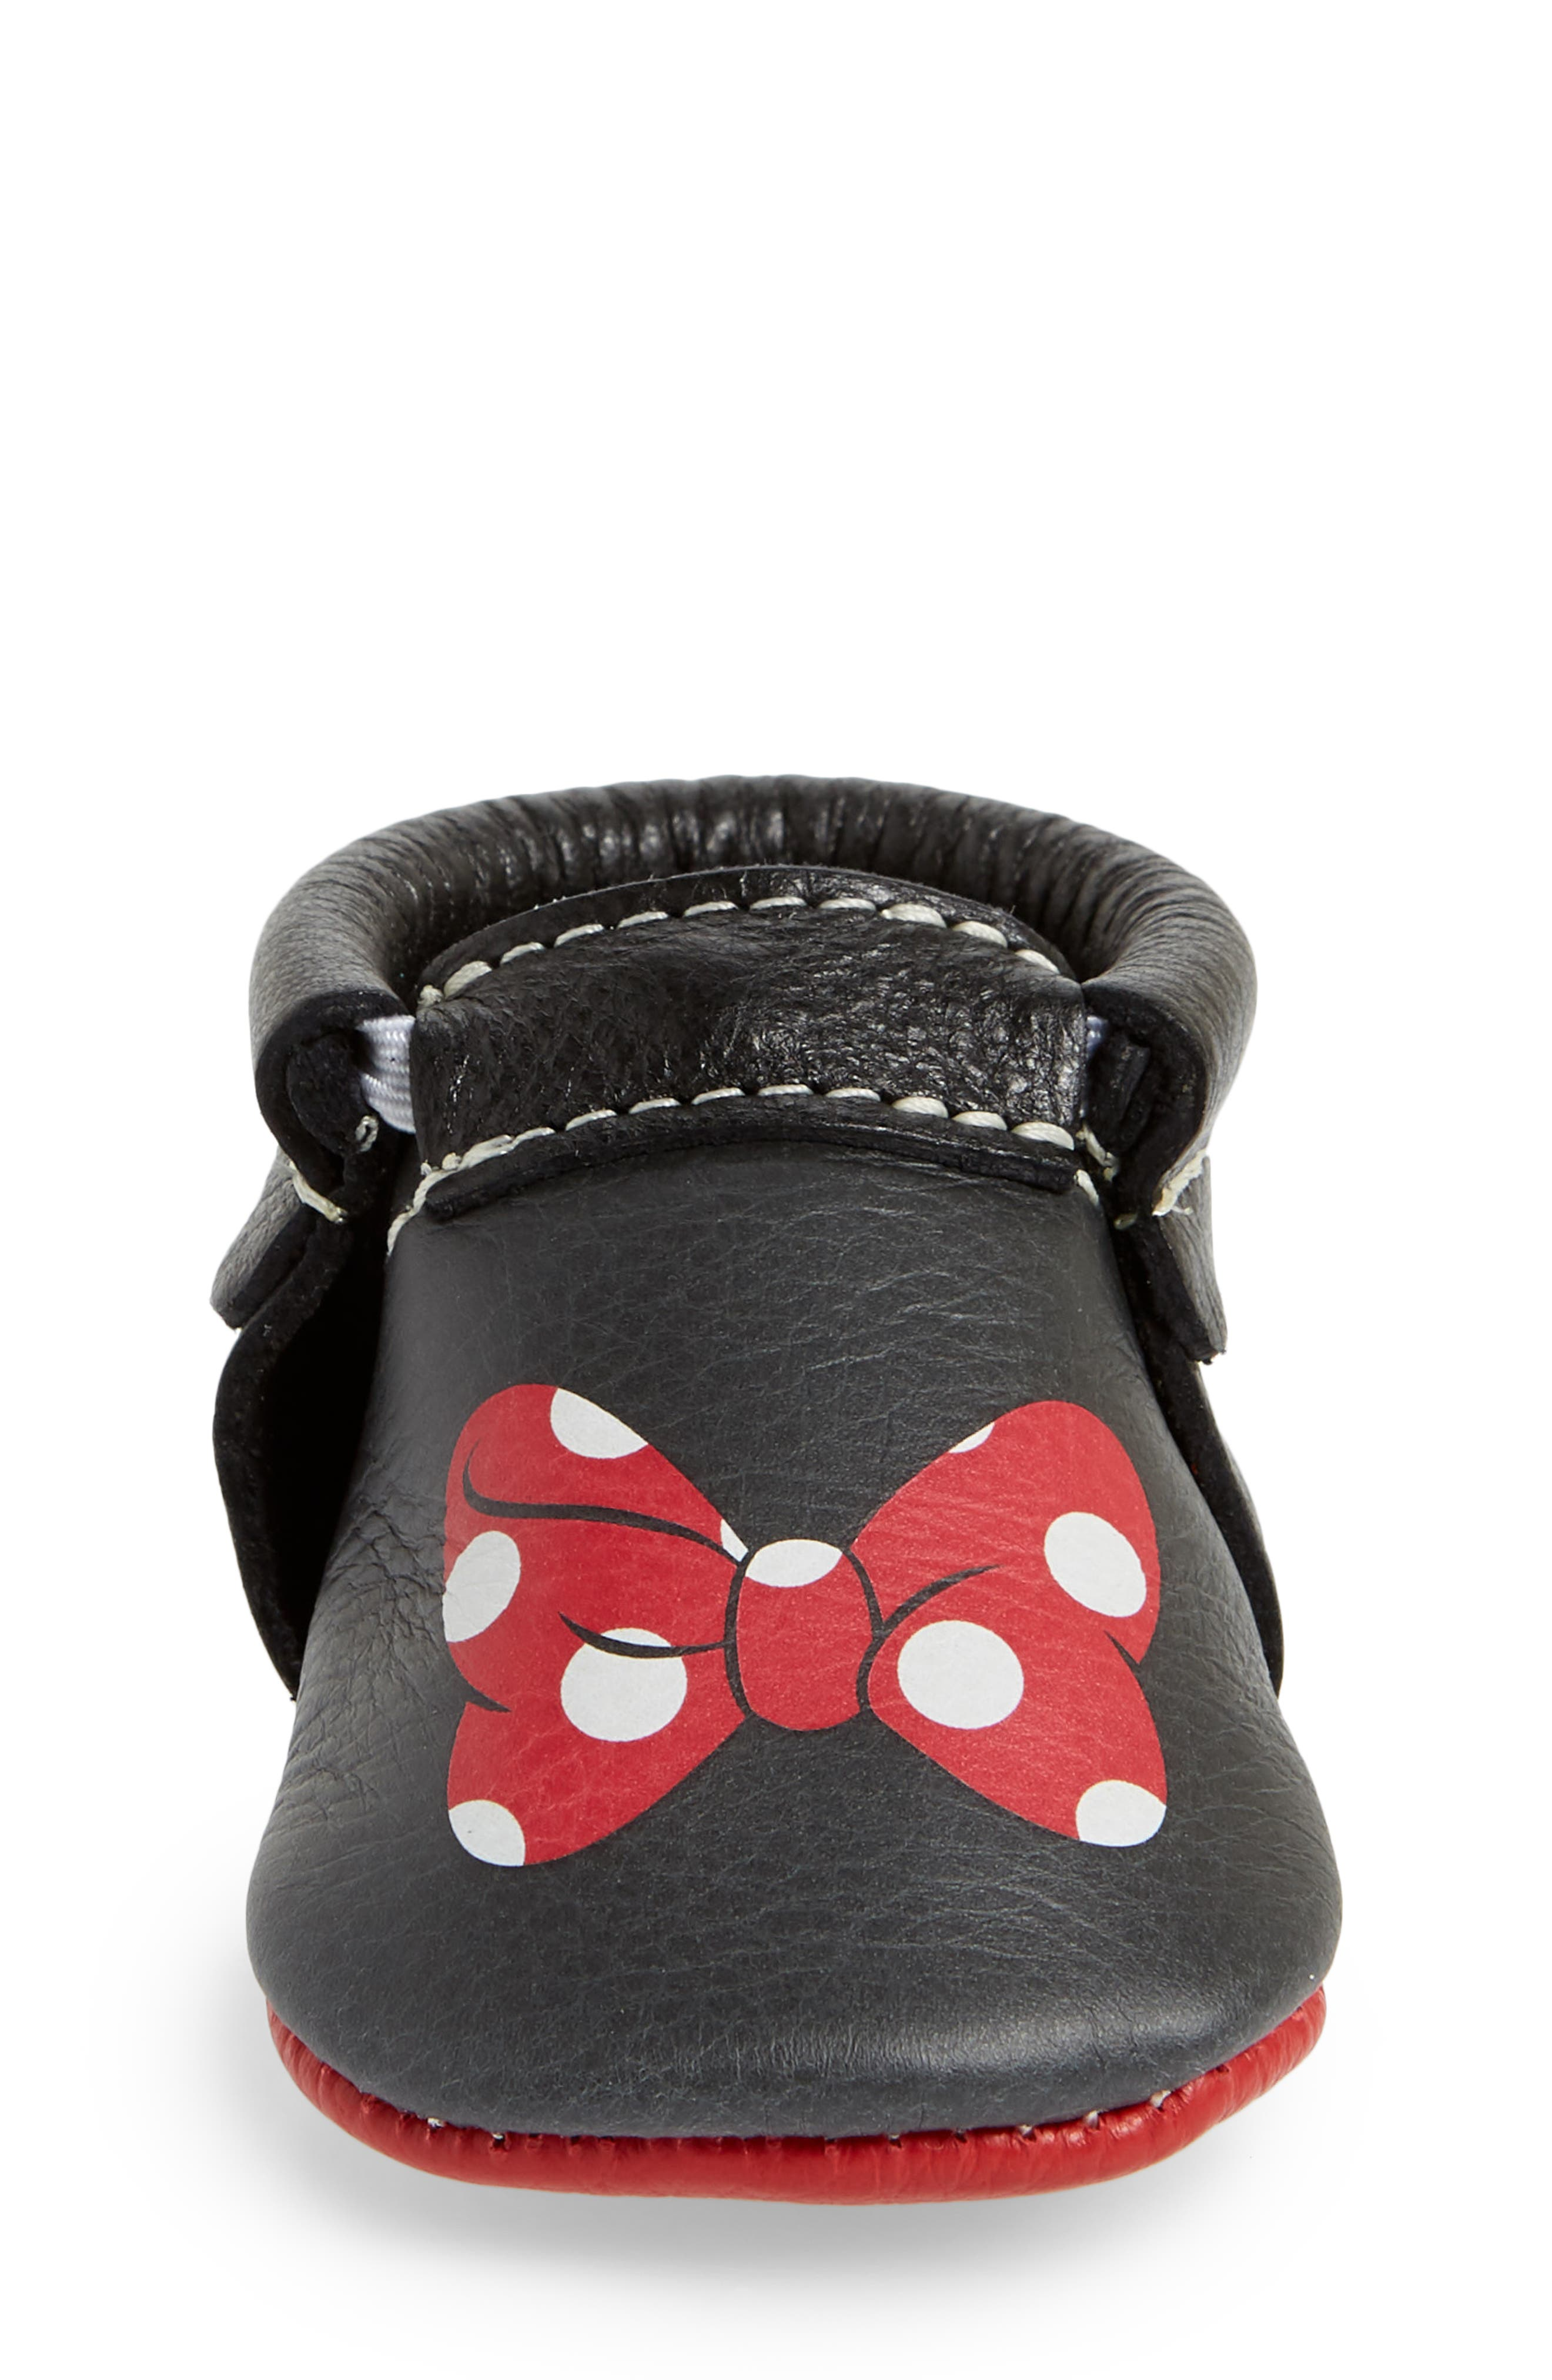 x Disney<sup>®</sup> Baby Minnie Mouse Crib Moccasin,                             Alternate thumbnail 4, color,                             Black Leather